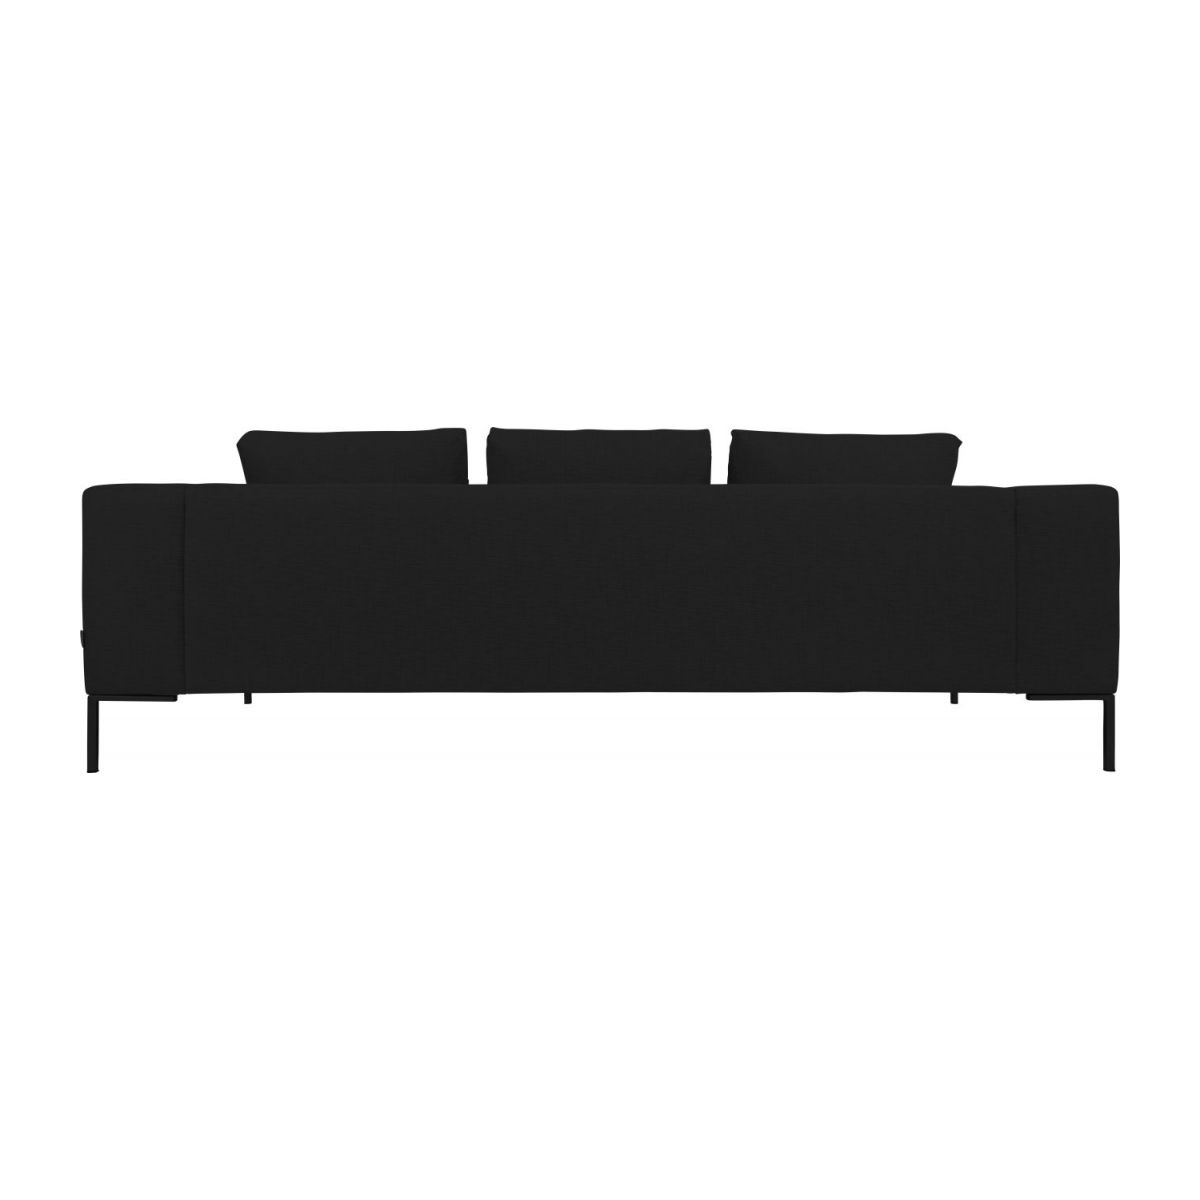 3 seater sofa in Ancio fabric, nero n°4